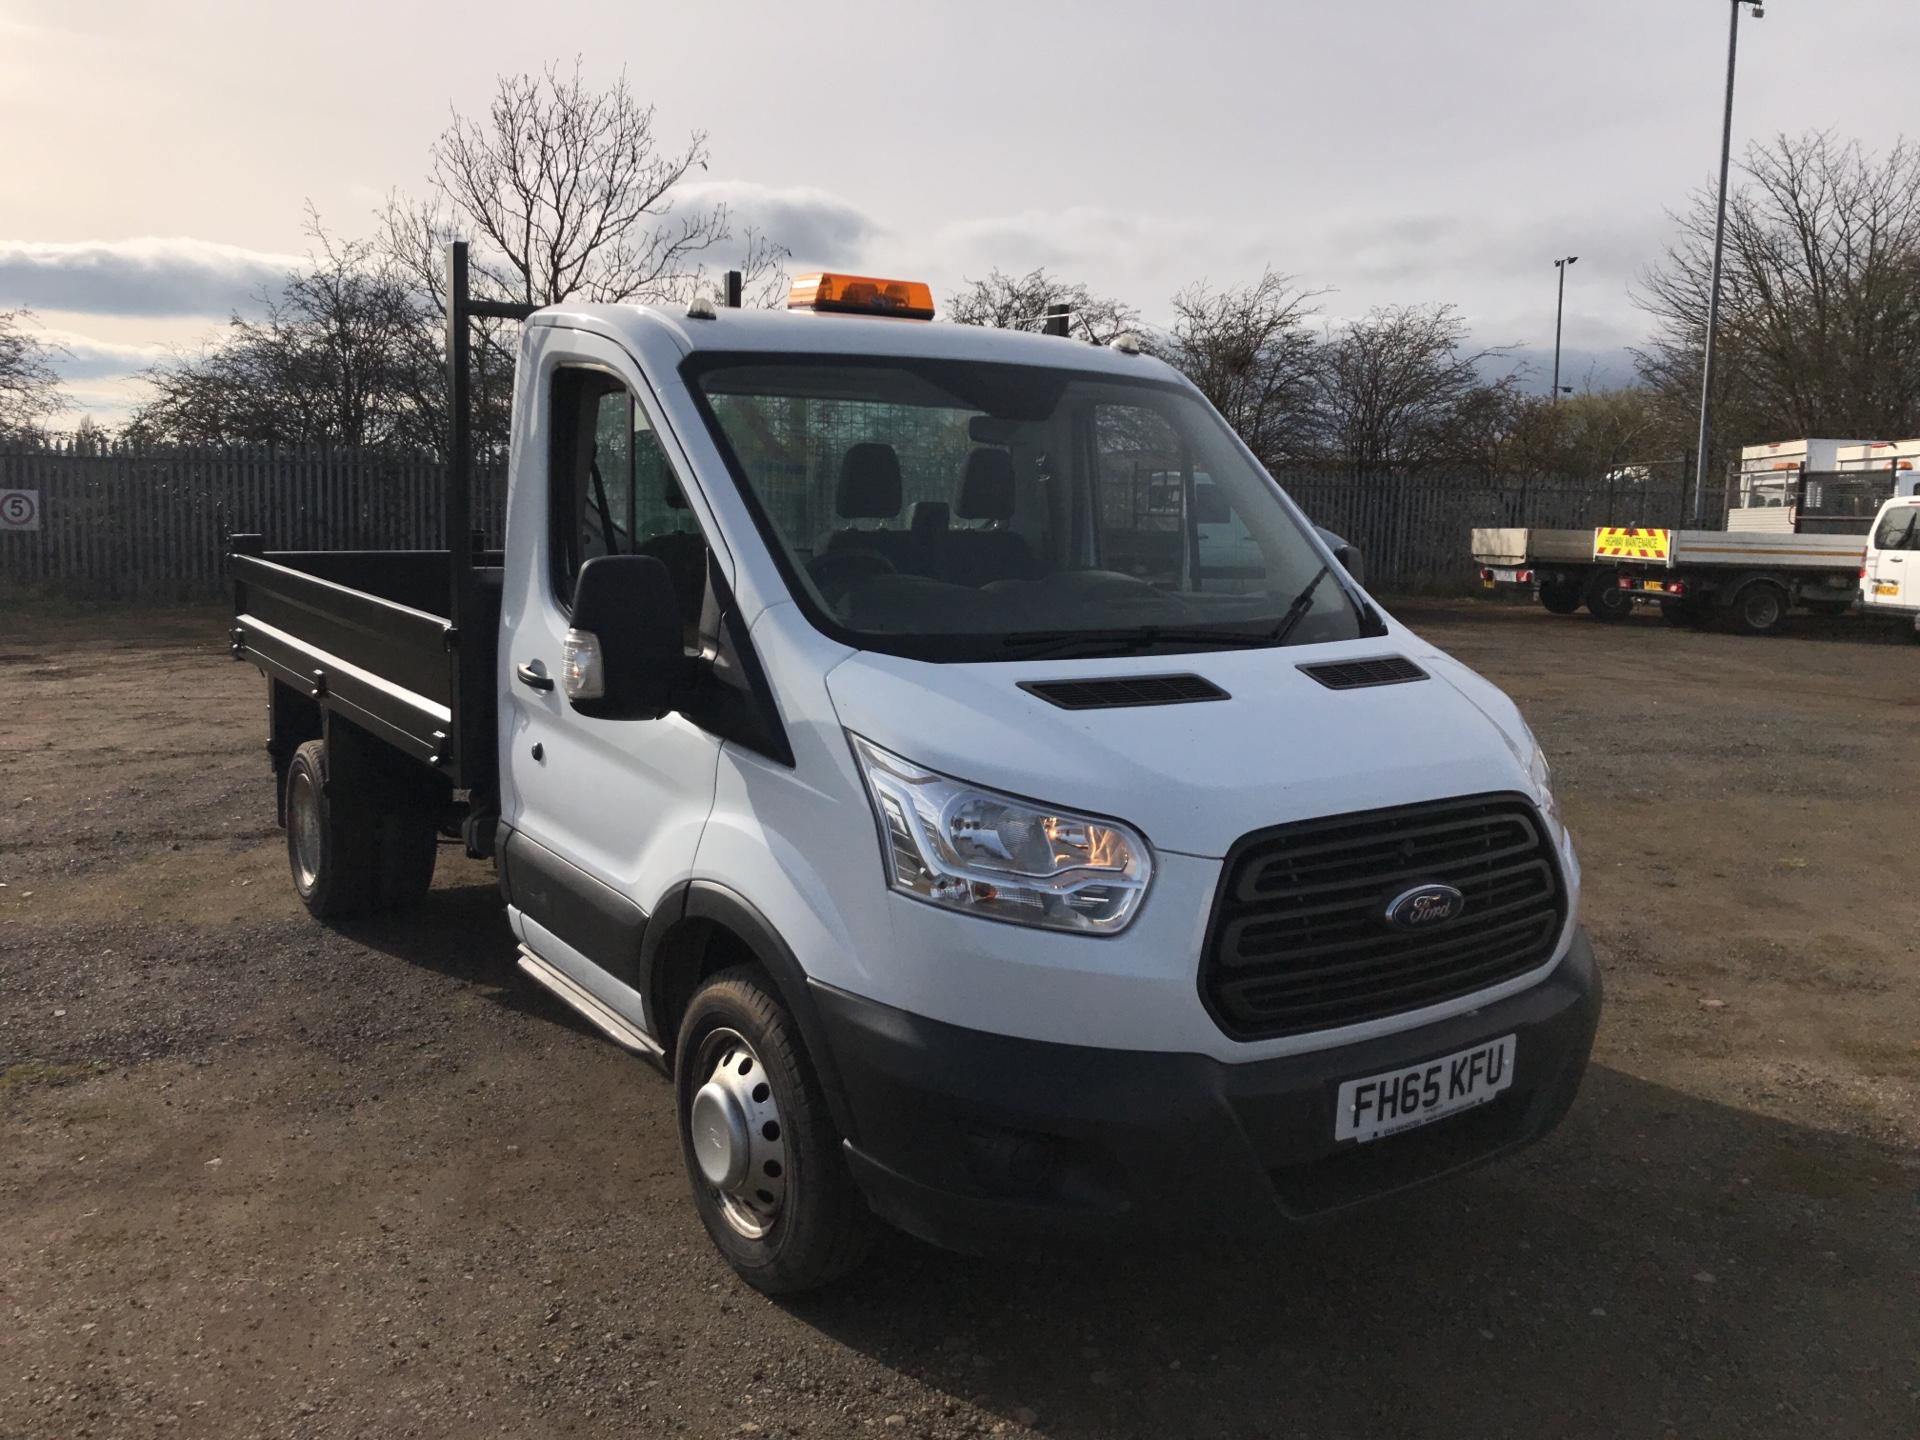 2016 Ford Transit 2.2 Tdci 125Ps Chassis Cab Tipper (FH65KFU)